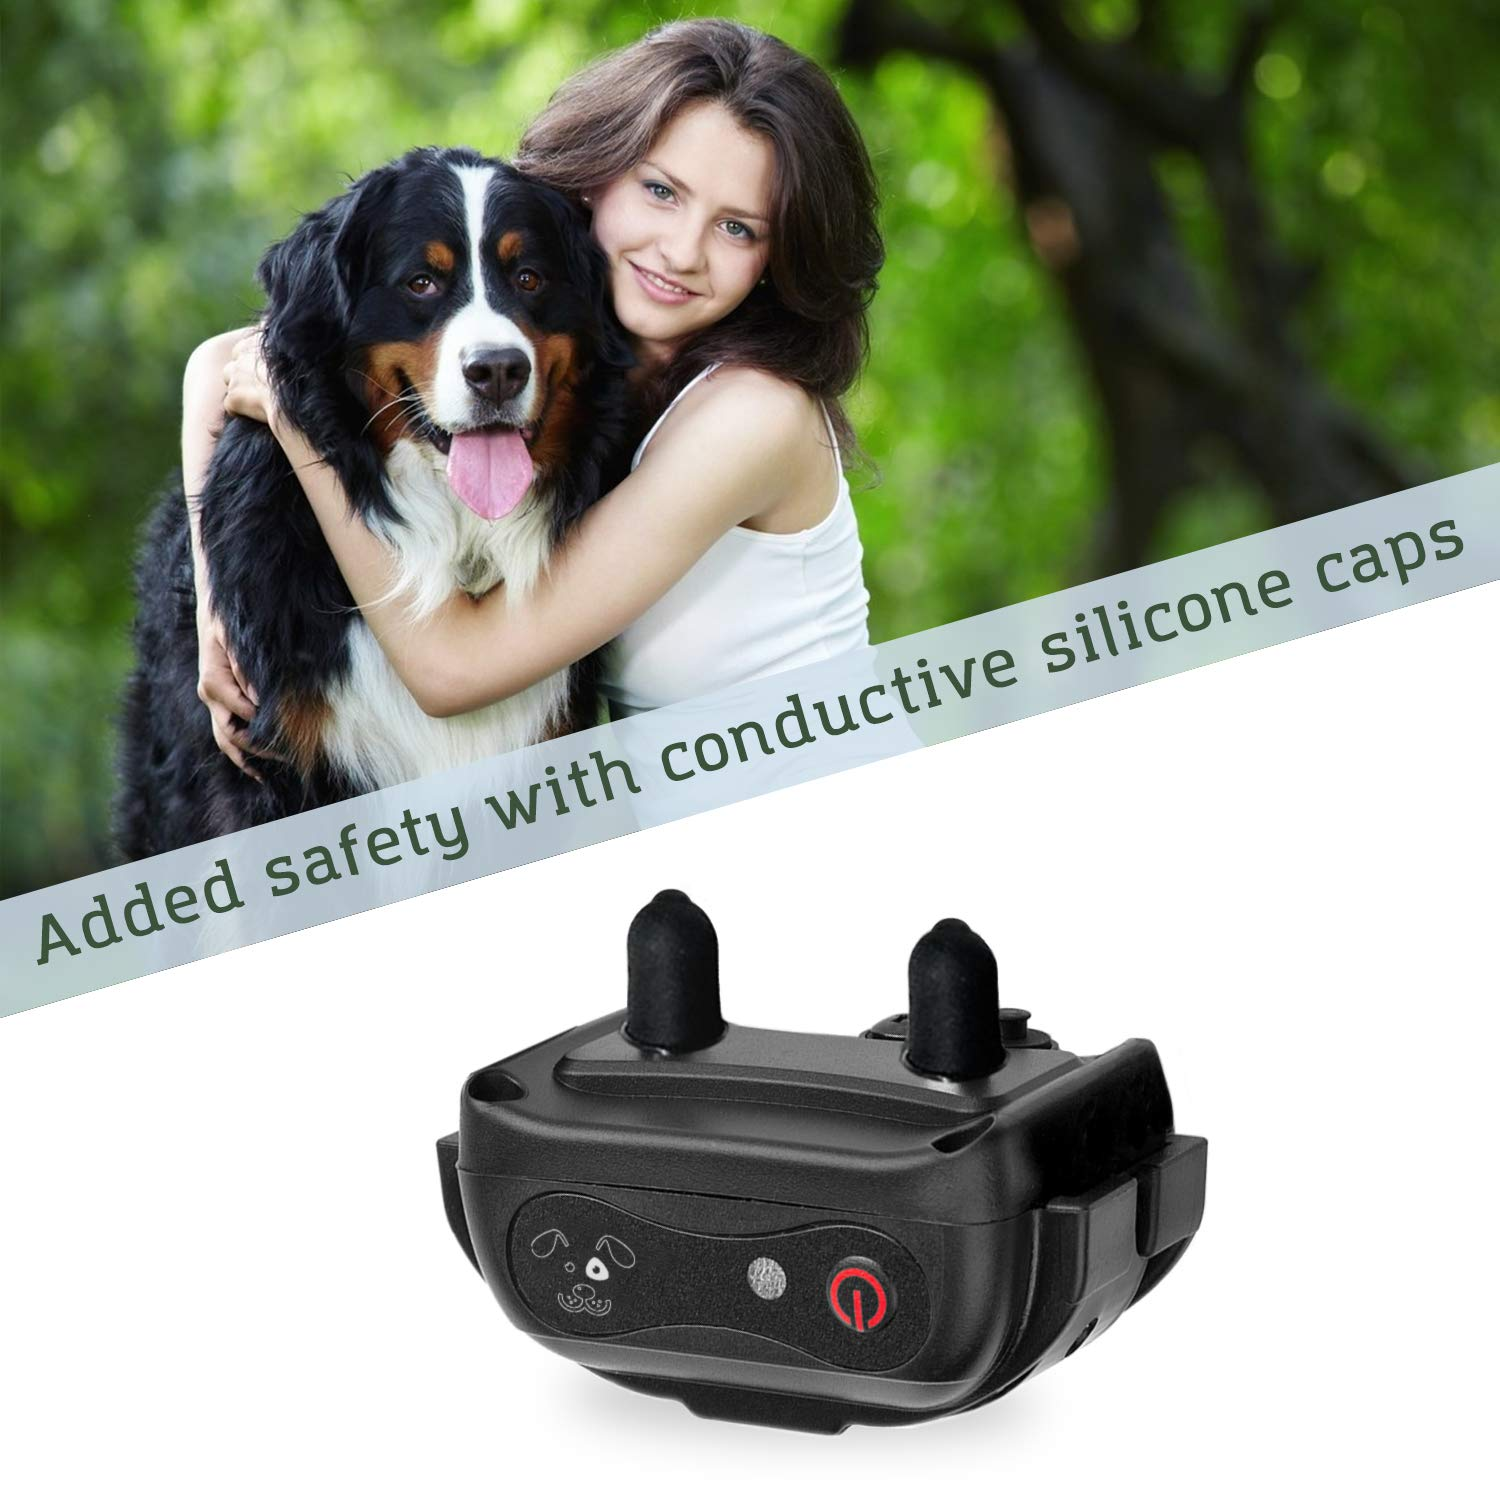 Small to Large Dogs Fully Waterproof Vibration and Beep Electric Trainer PetSpy X-Pro Dog Training Shock Collar for Dogs with Remote